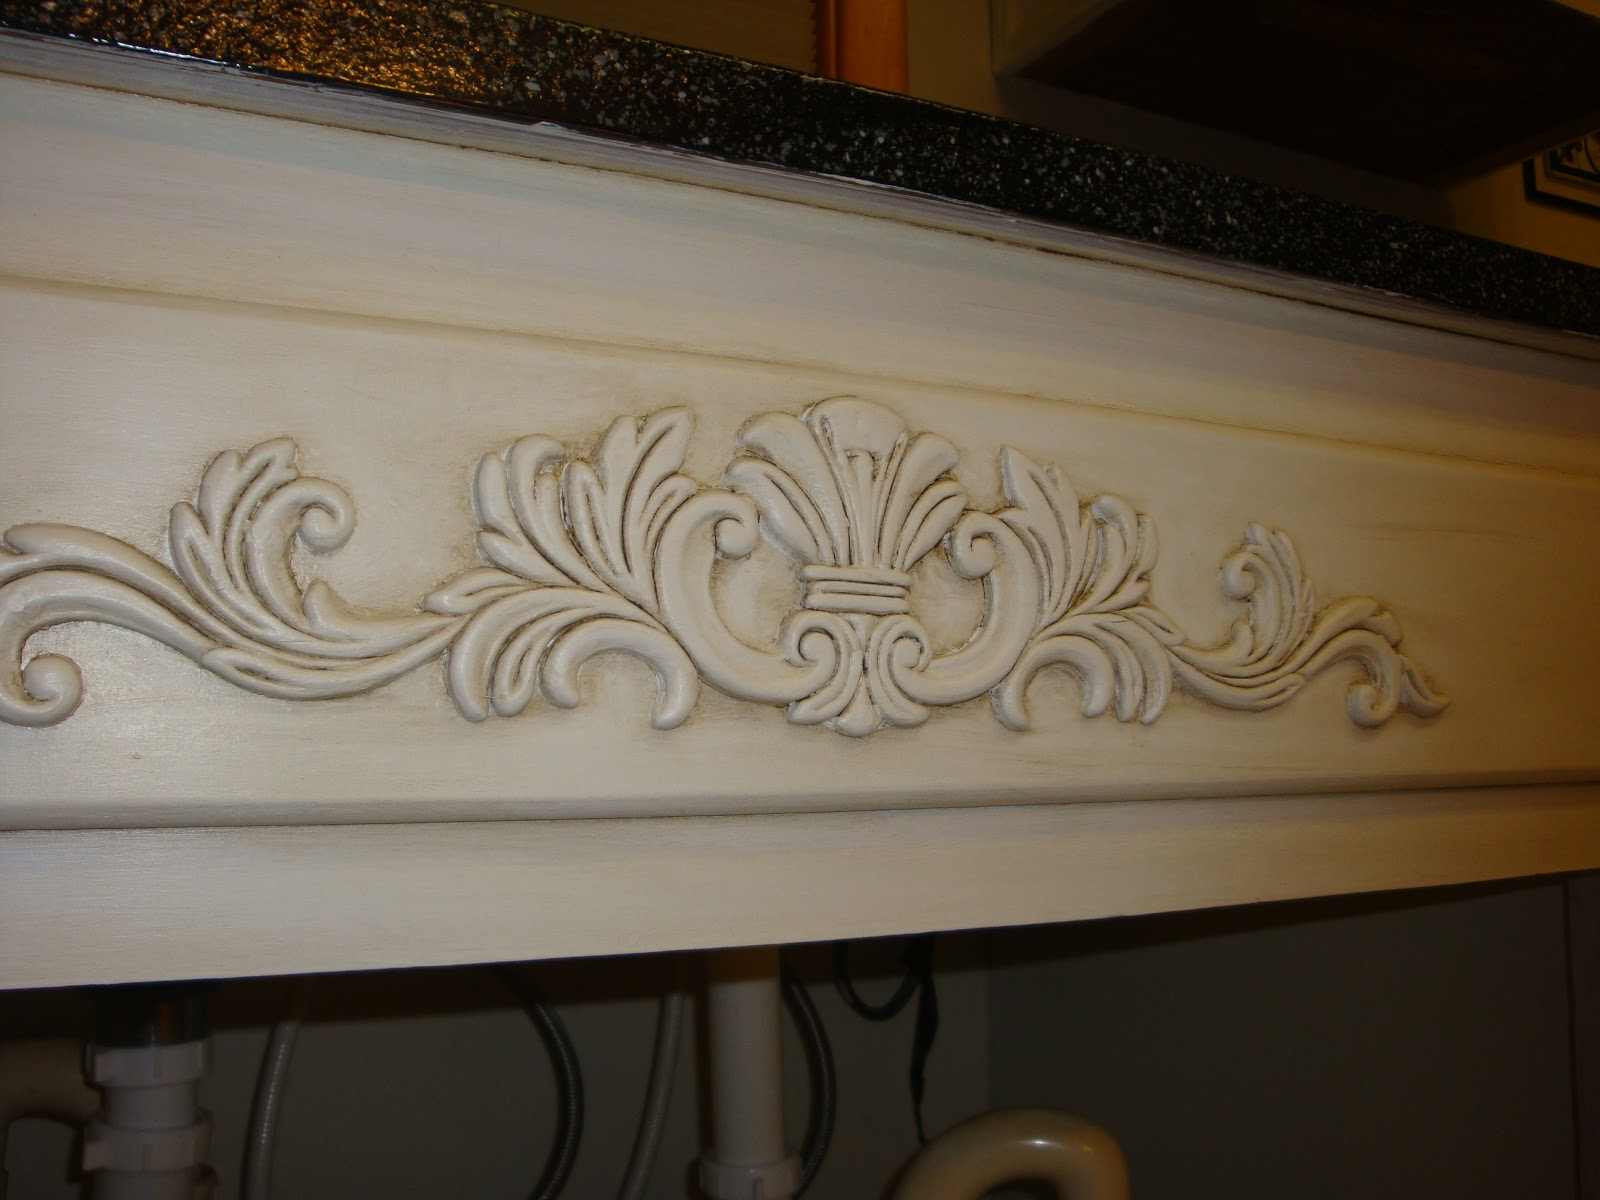 also added moulding around the end cupboards and an embellishment